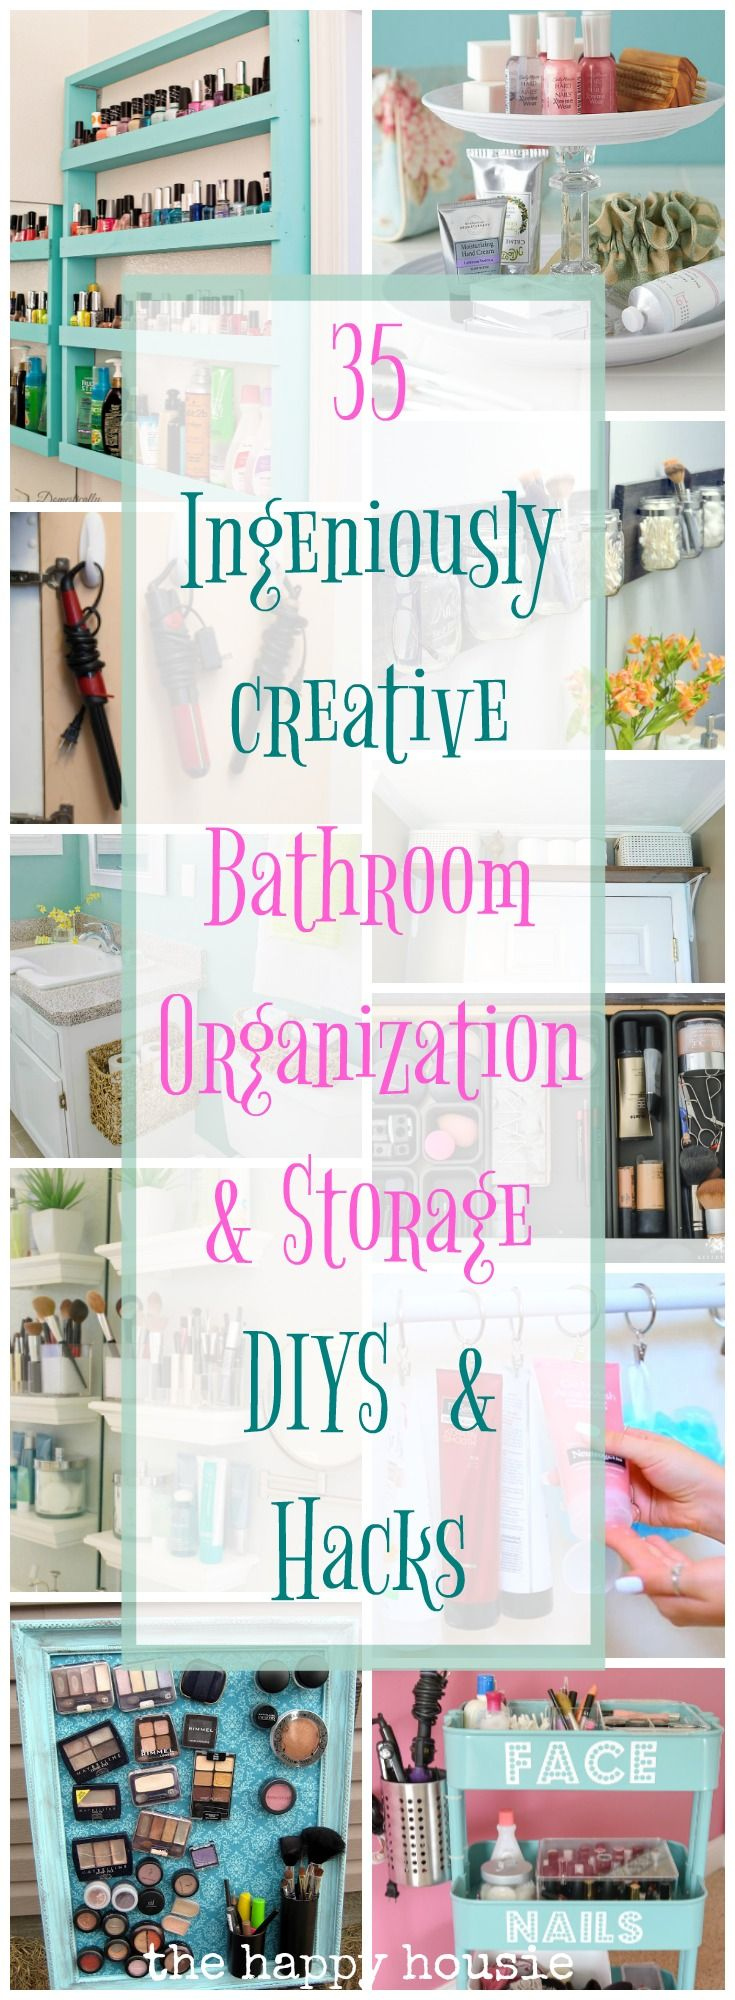 Ingenious Ideas & DIYs for Bathroom Organization & Storage - The Happy Housie